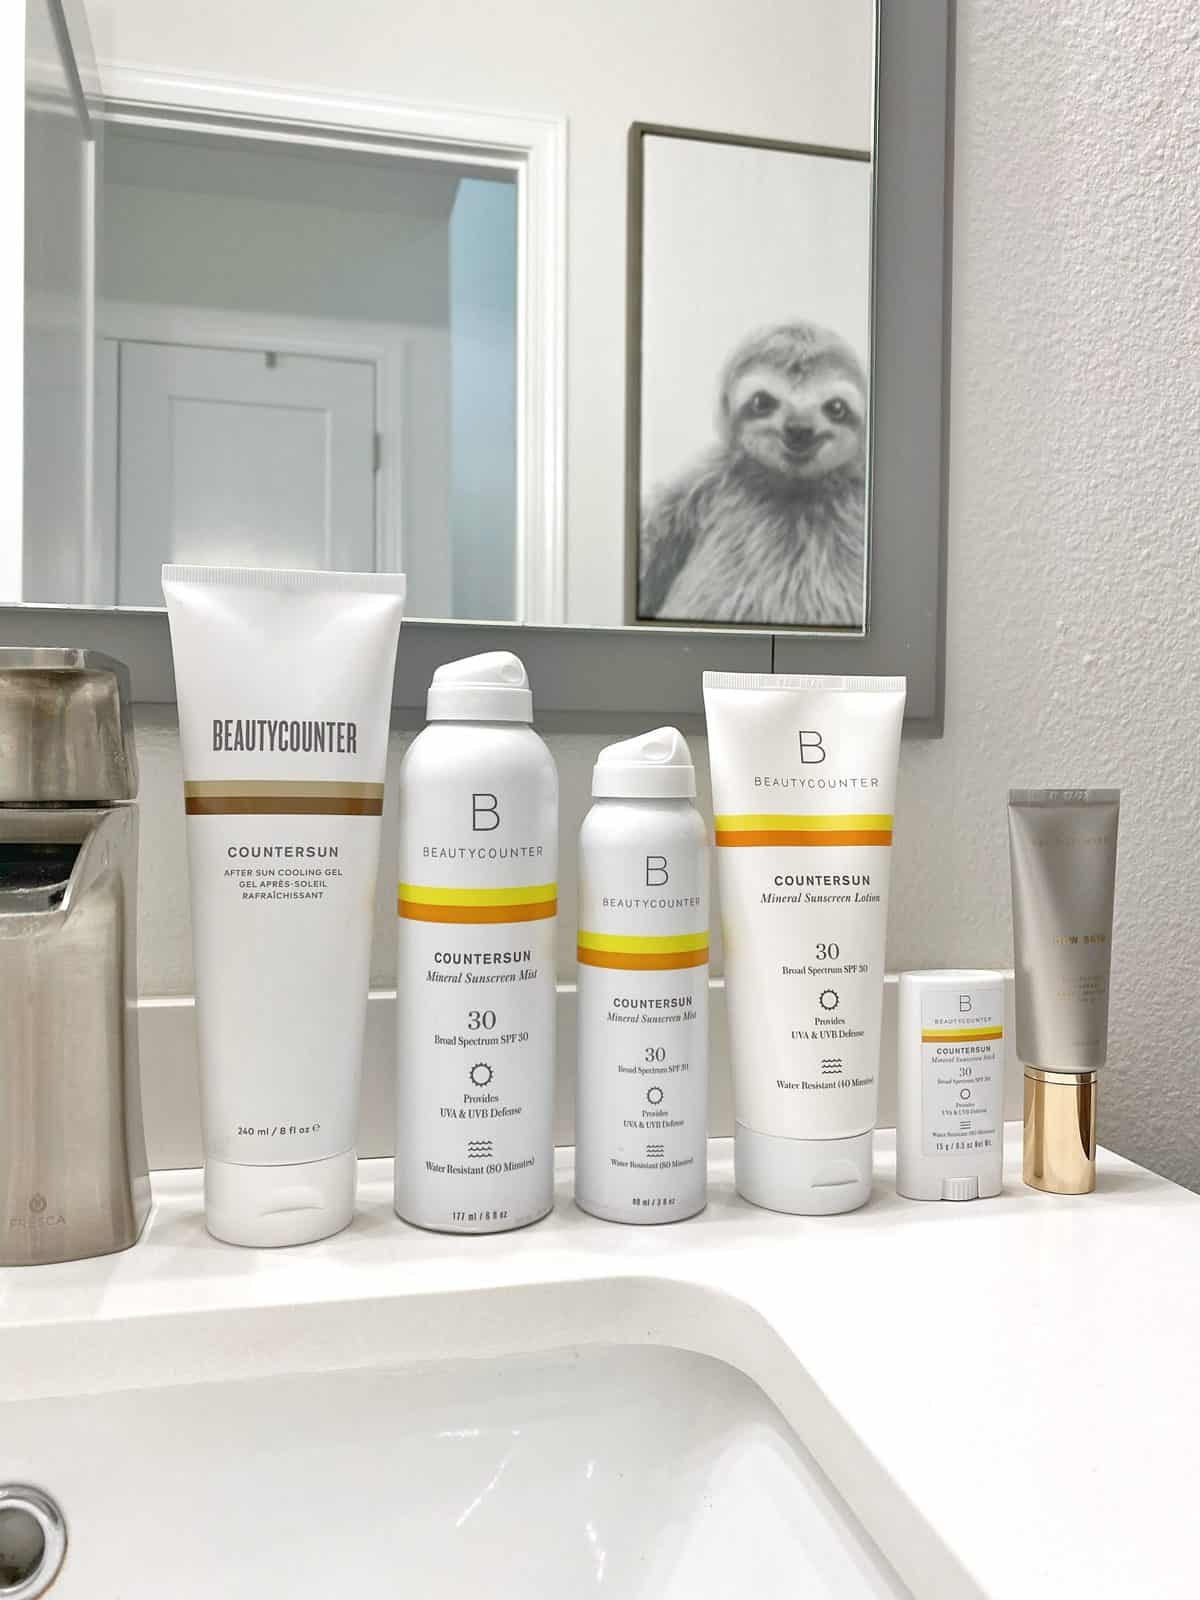 Beautycounter sunscreen lined up on a bathroom vanity: Countersun After Sun Cooling Gel, Countersun Mineral Sunscreen Mist SPF 30, Countersun Mineral Sunscreen Lotion SPF 30, Countersun Mineral Sunscreen Stick SPF 30, and Dew Skin. Above the bathroom vanity is a mirror that reflects back a framed photo of a sloth.